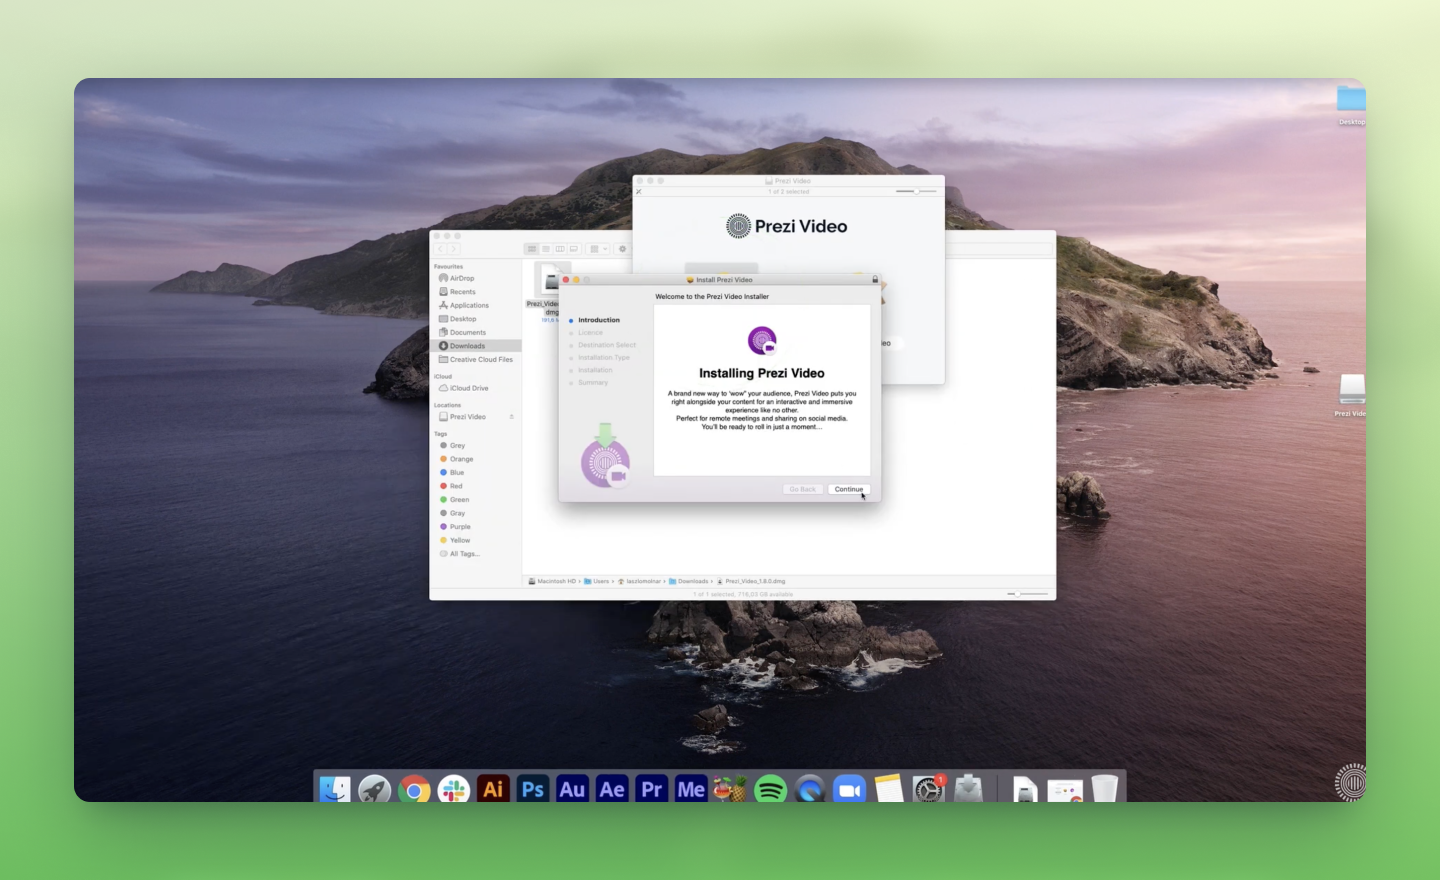 how to install the Prezi Video app on Mac